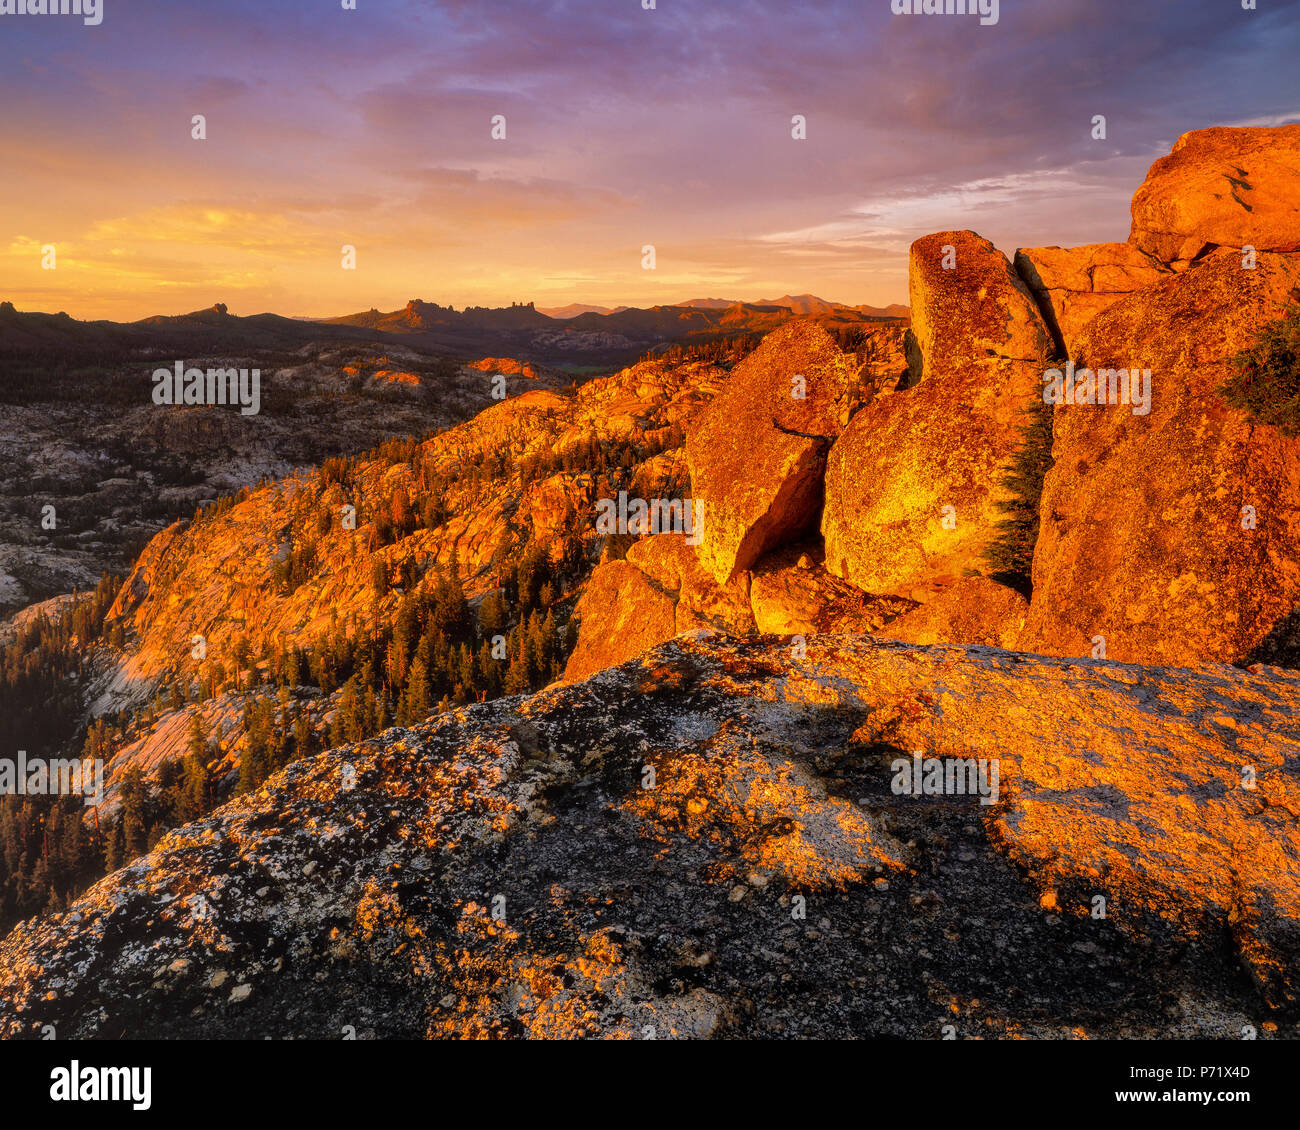 Sunset, Burst formazione di roccia, emigrante deserto, Stanislaus National Forest, Sierra Nevada, in California Immagini Stock